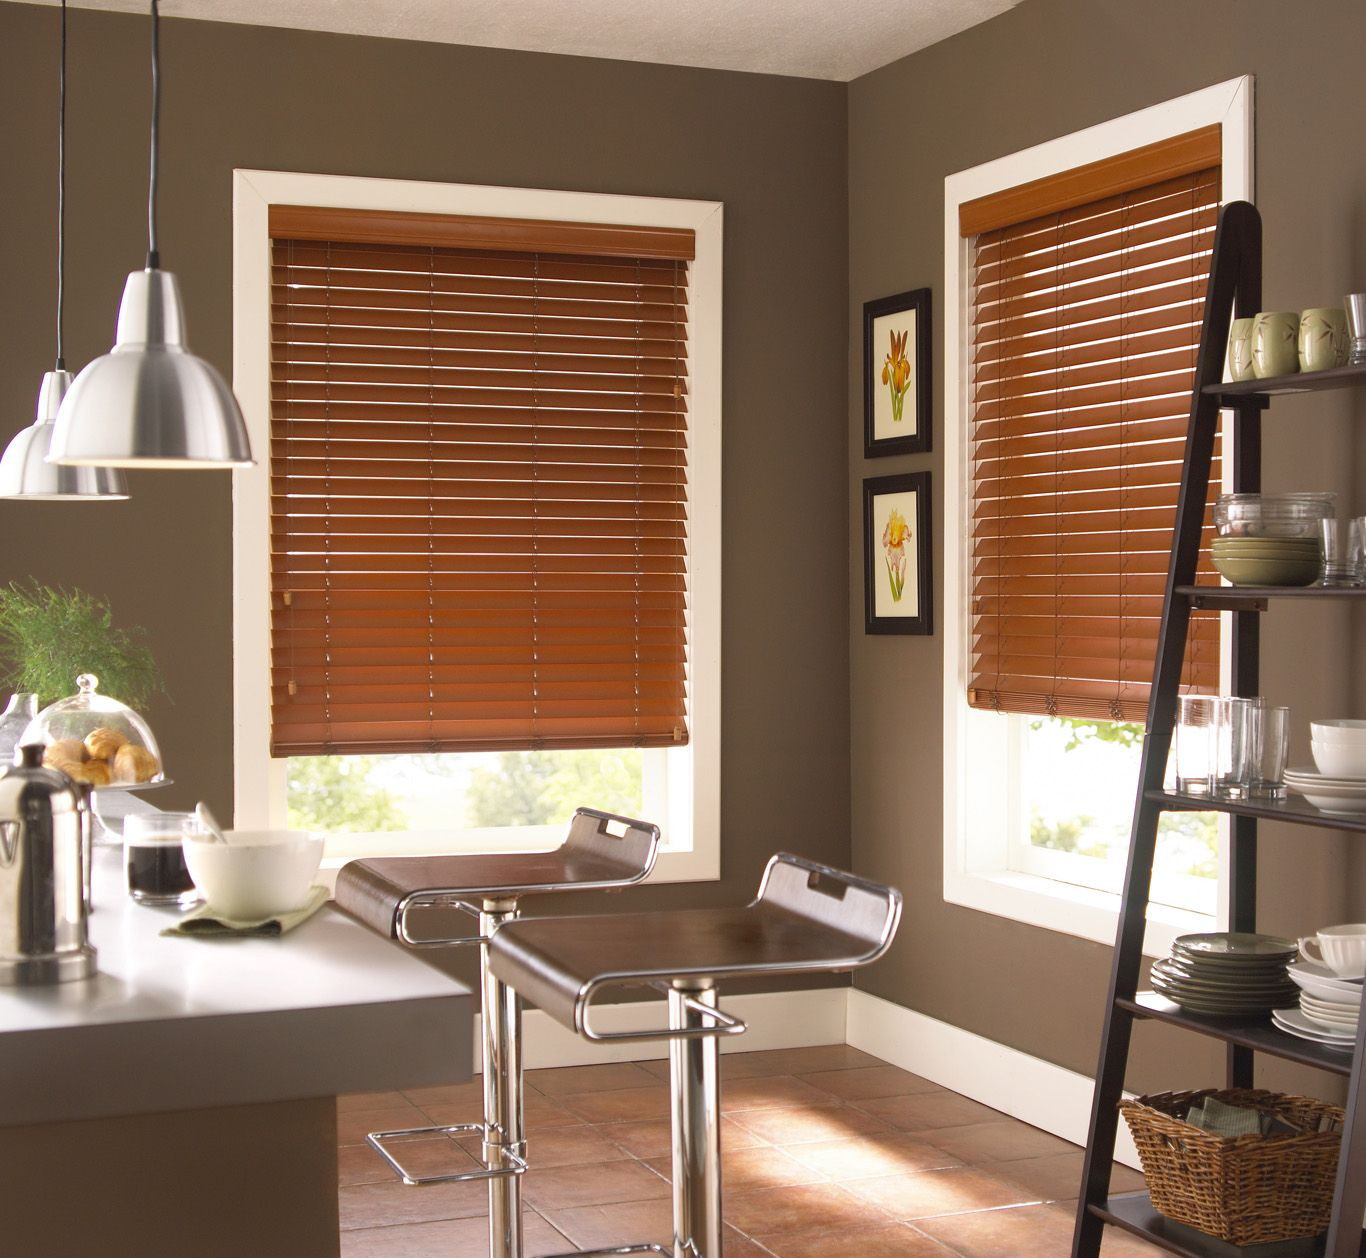 Faux Wood Blinds Are Great For The Kitchen Due To Their